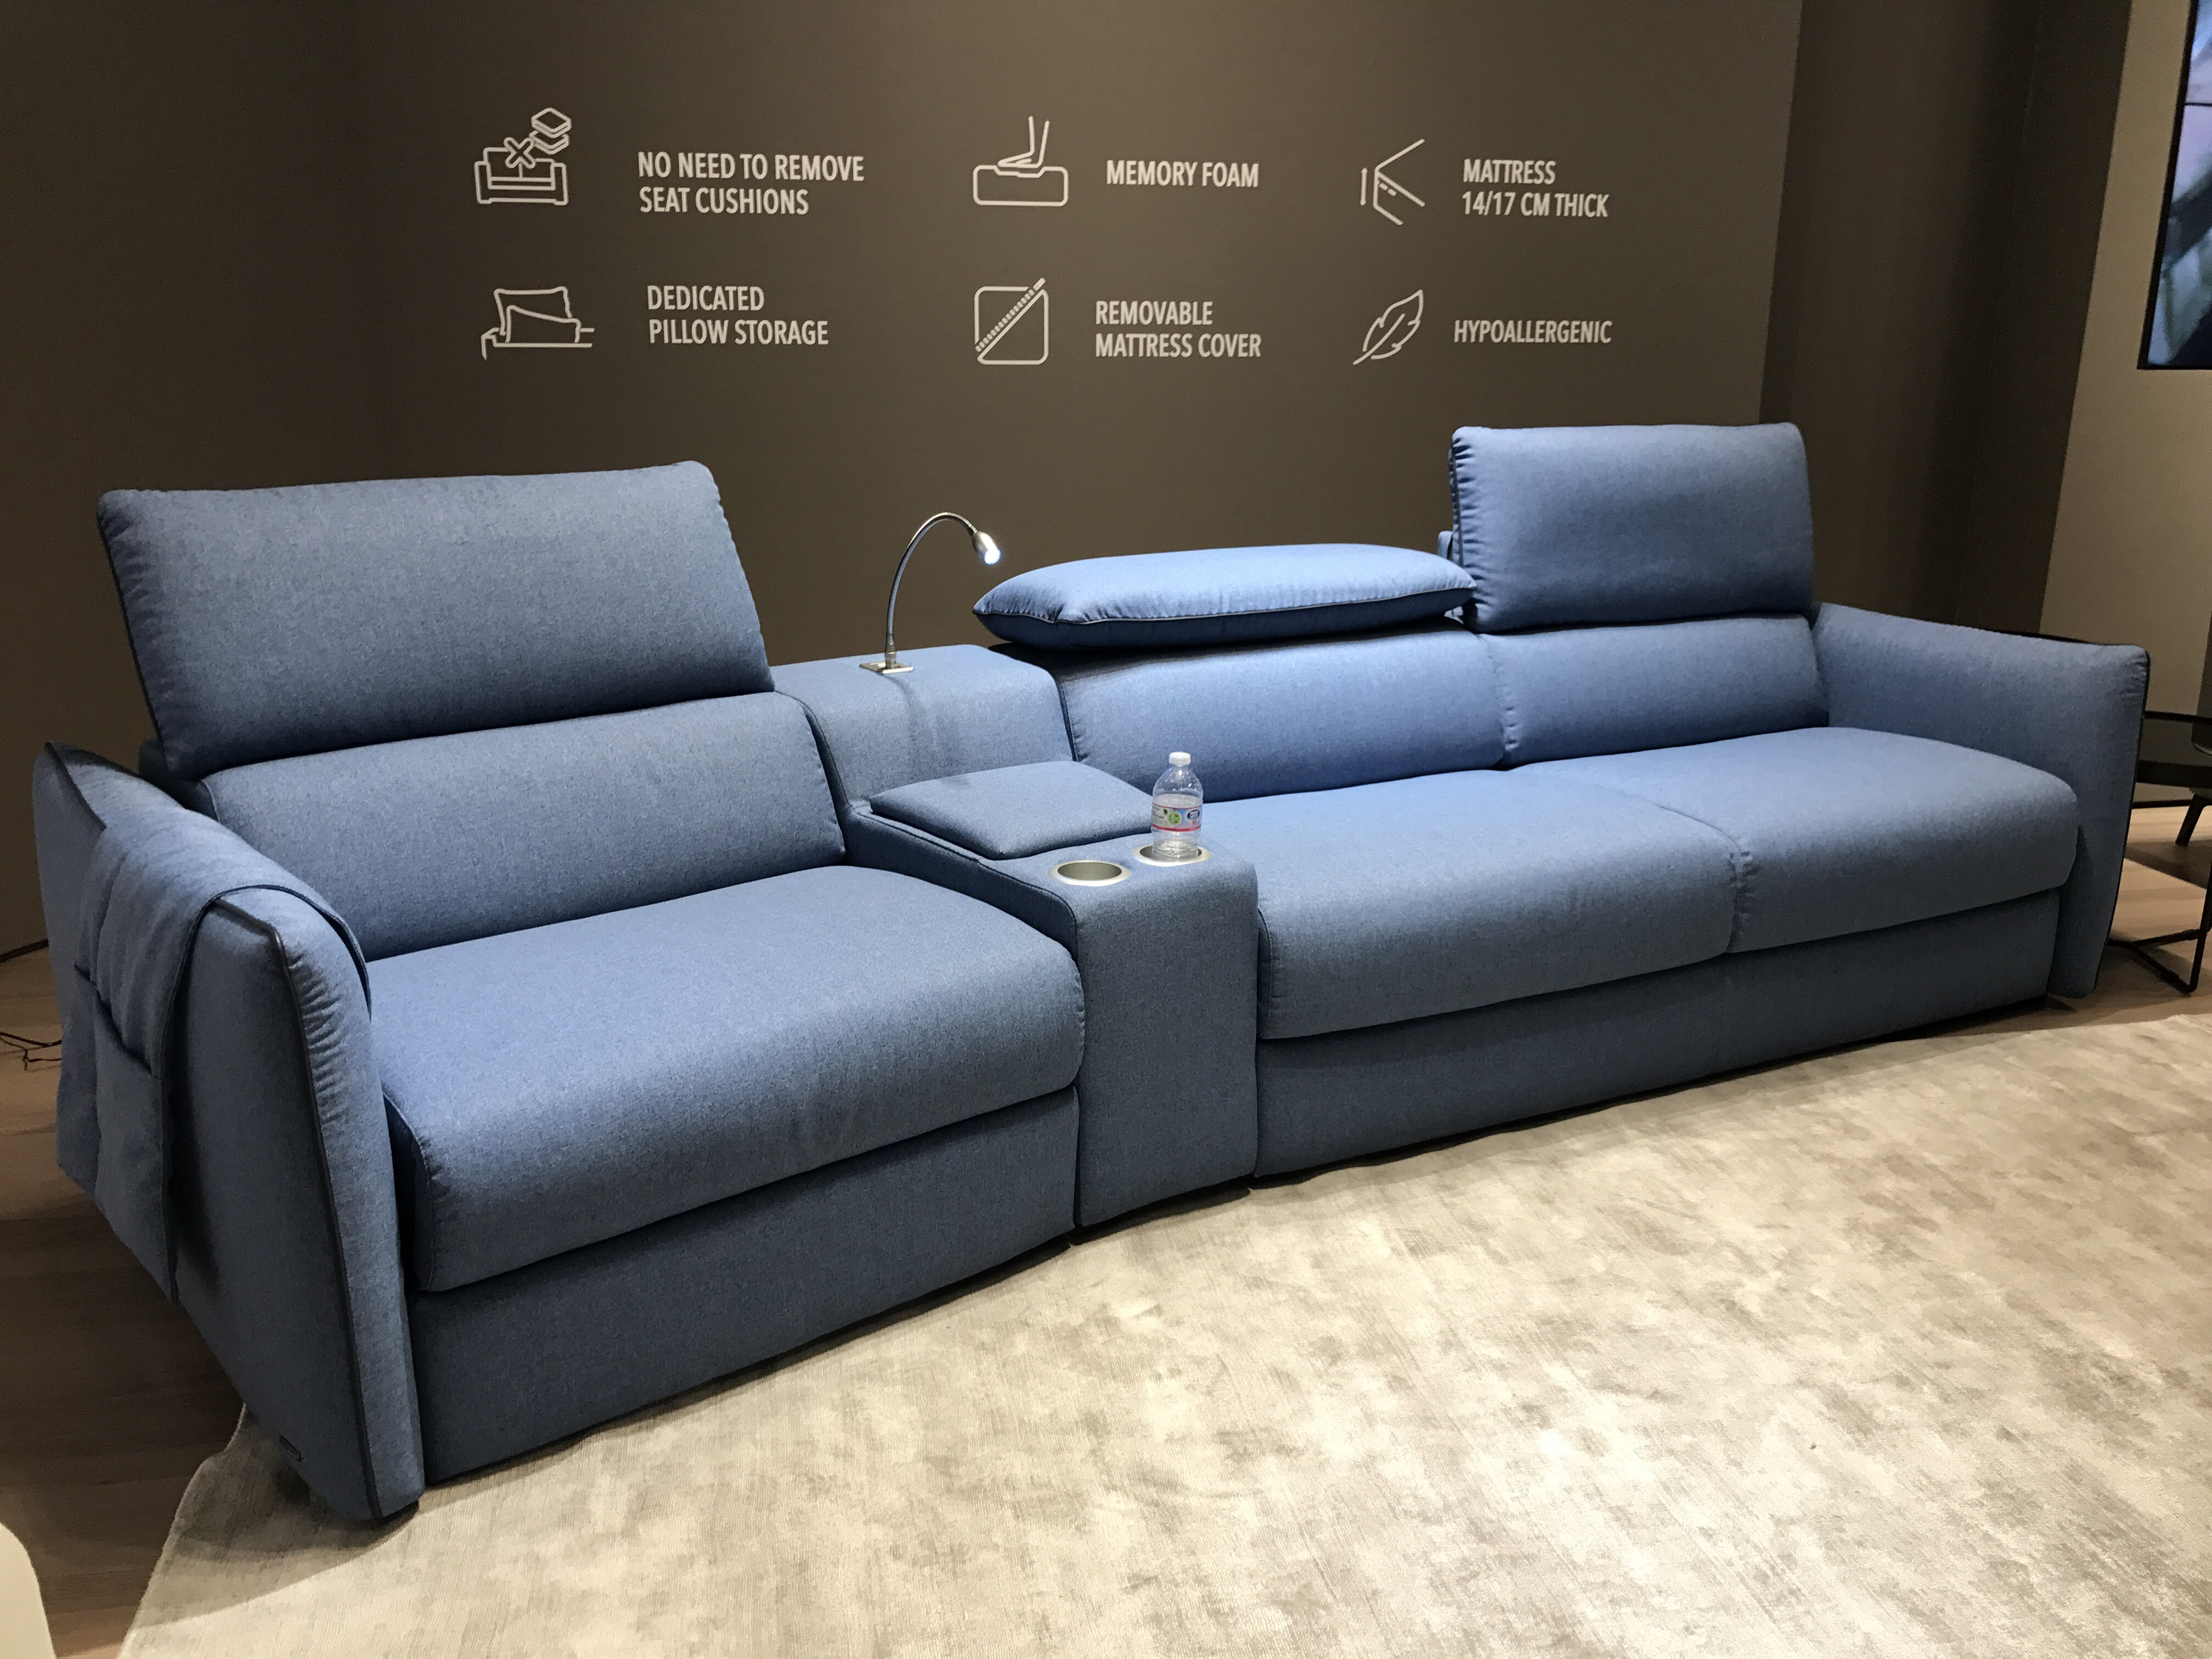 home cinema sofa seating uk wayfair sectional bed natuzzi b995 tullio or comfort